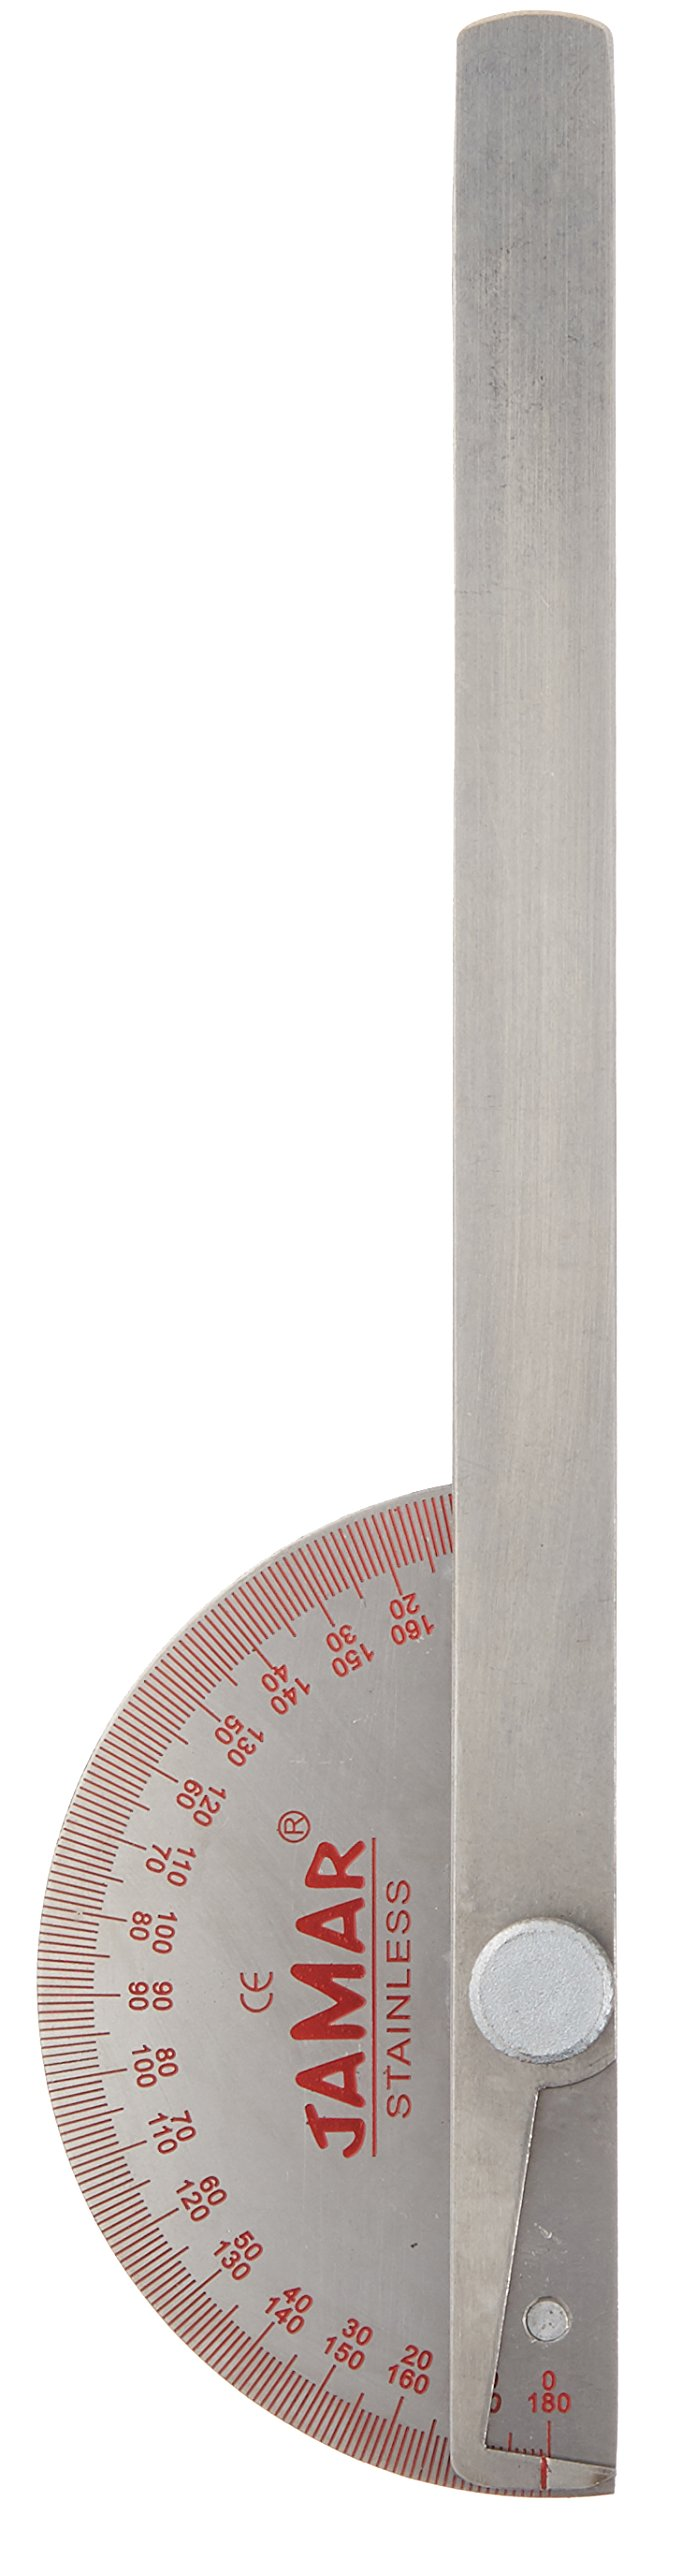 JamarStainless SteelGoniometer,8'' (20cm), Professional Manual Hand and Finger Range of Motion Tool for Accurate Angle Measuring, Non Locking Protractor for Inch & Centimeter Linear Measurement